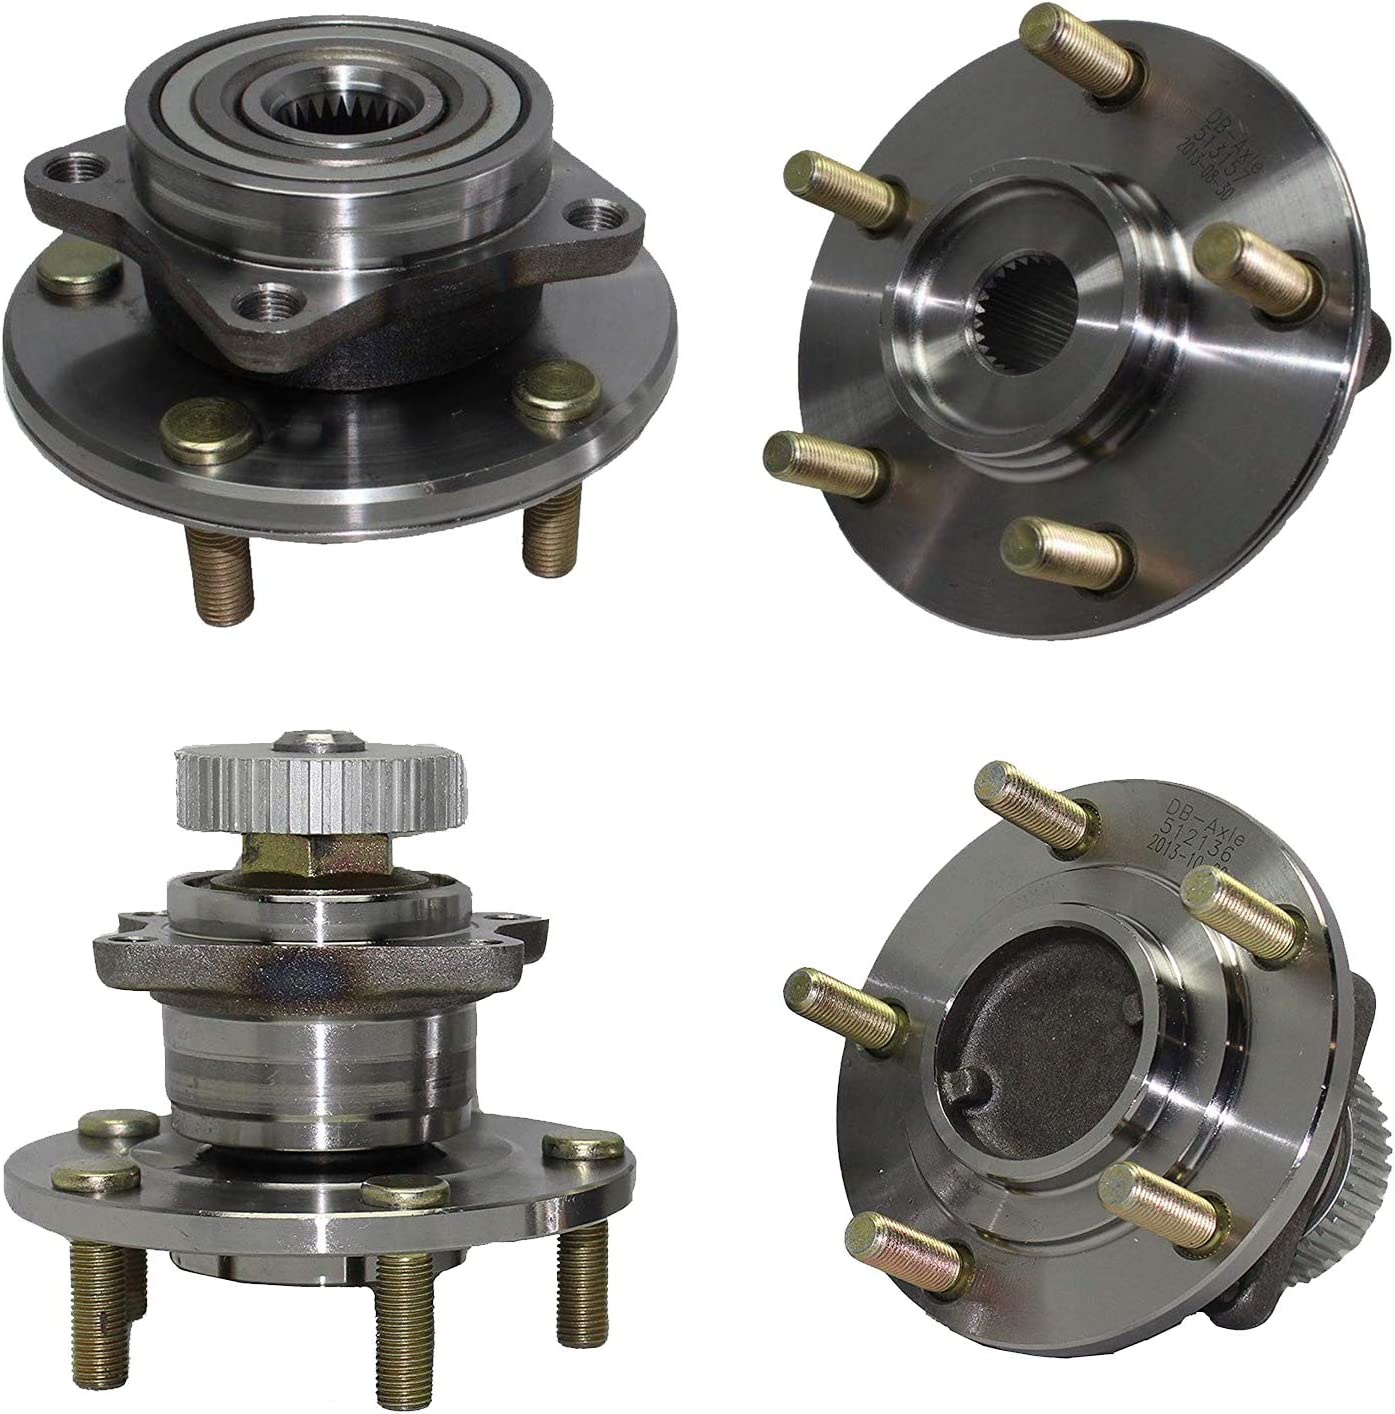 5 Lug Eclipse 2 Door Coupe Front Wheel Bearing and Hub Assembly Compatible With Chrysler Sebring Dodge Stratus 2.4L L4 Pair TUCAREST 513157 x2 Avenger Eagle Talon Mitsubishi Galant